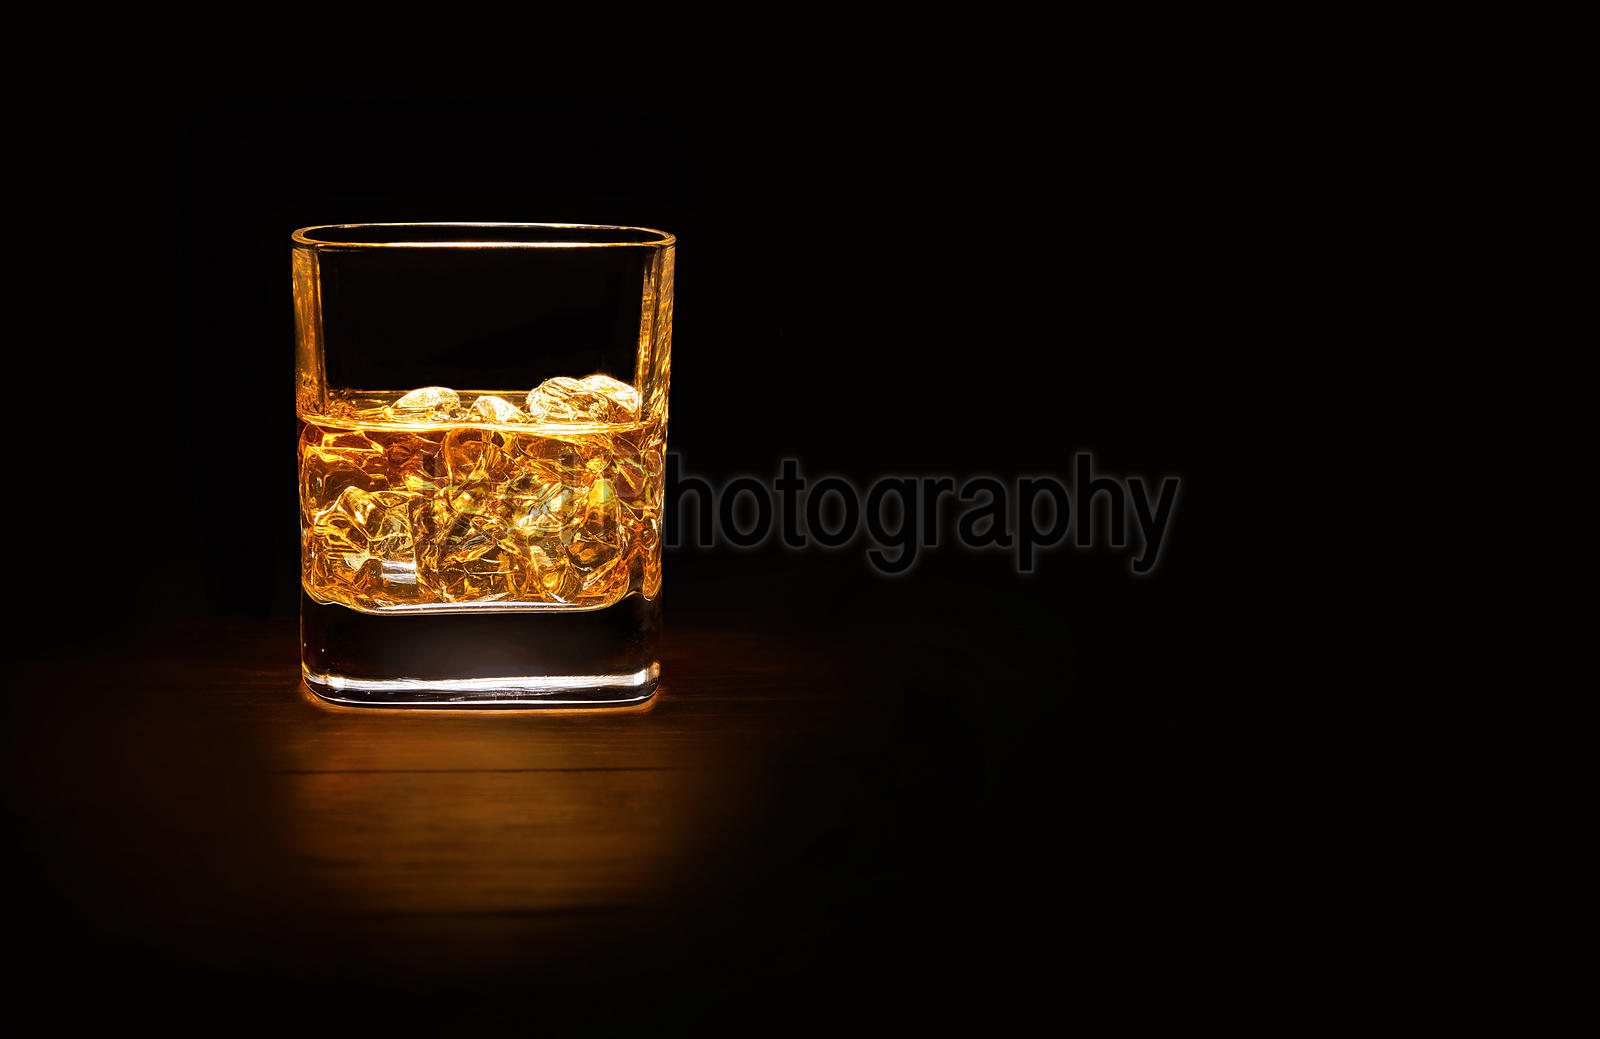 Tumbler of single malt whisky